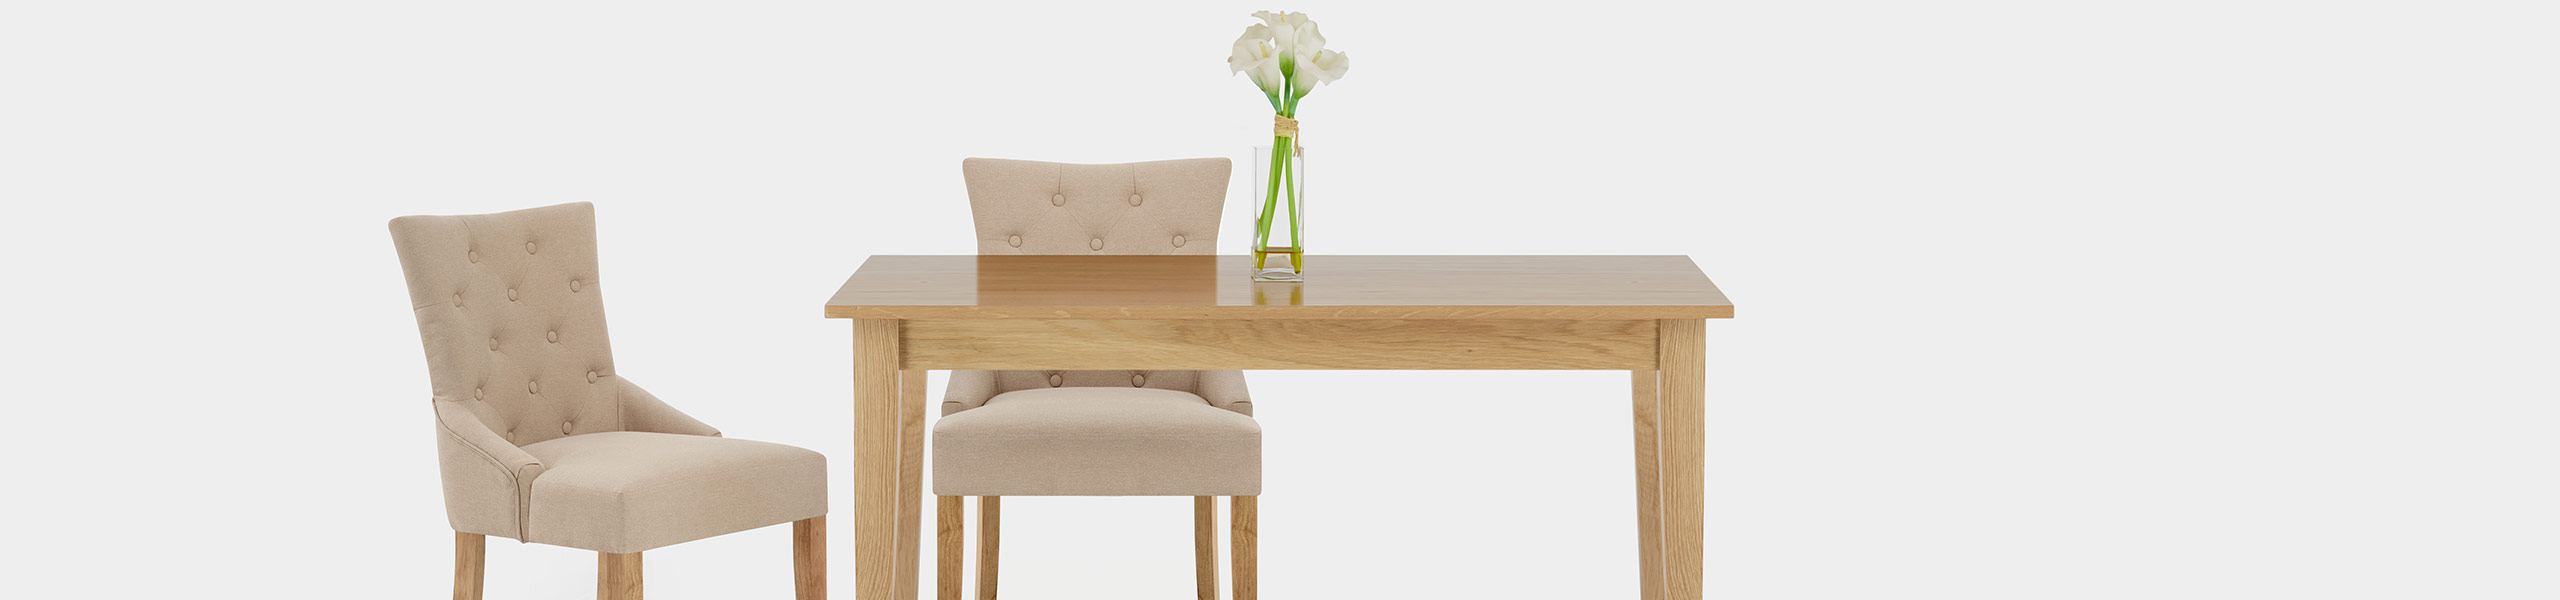 Verdi Chair Oak & Beige Video Banner